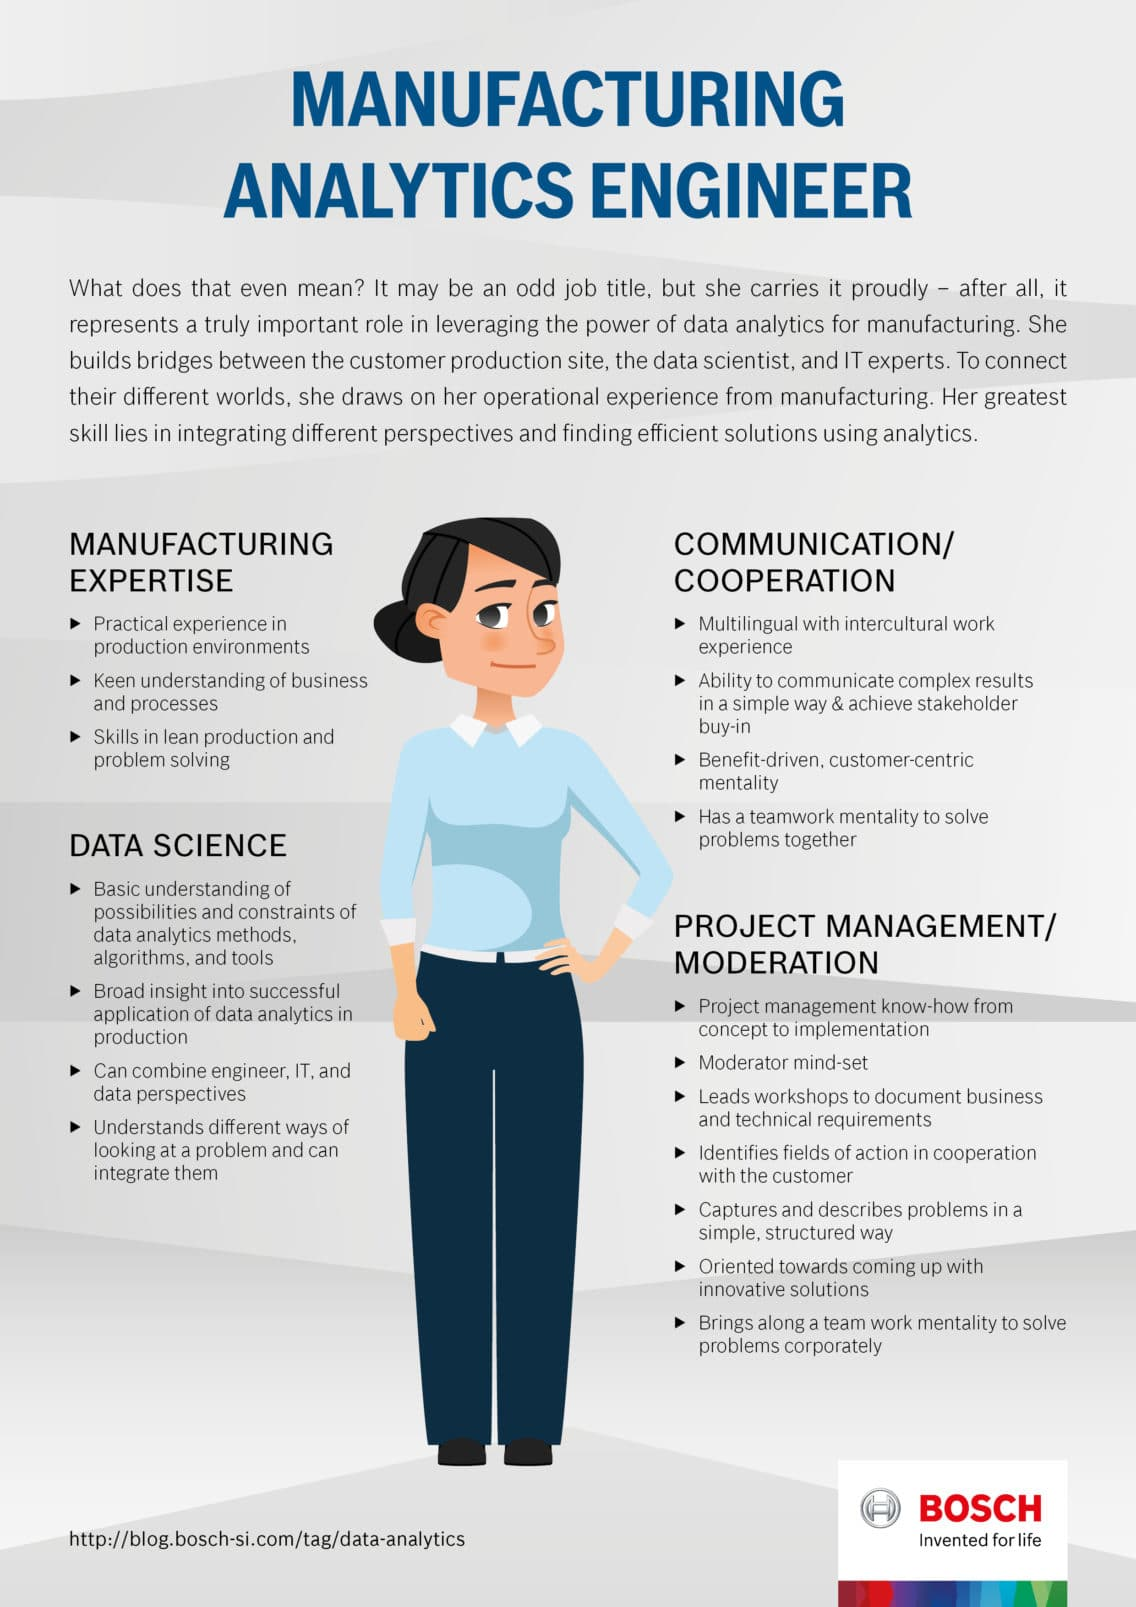 Infographic showing a persona of a manufacturing analytics engineer.